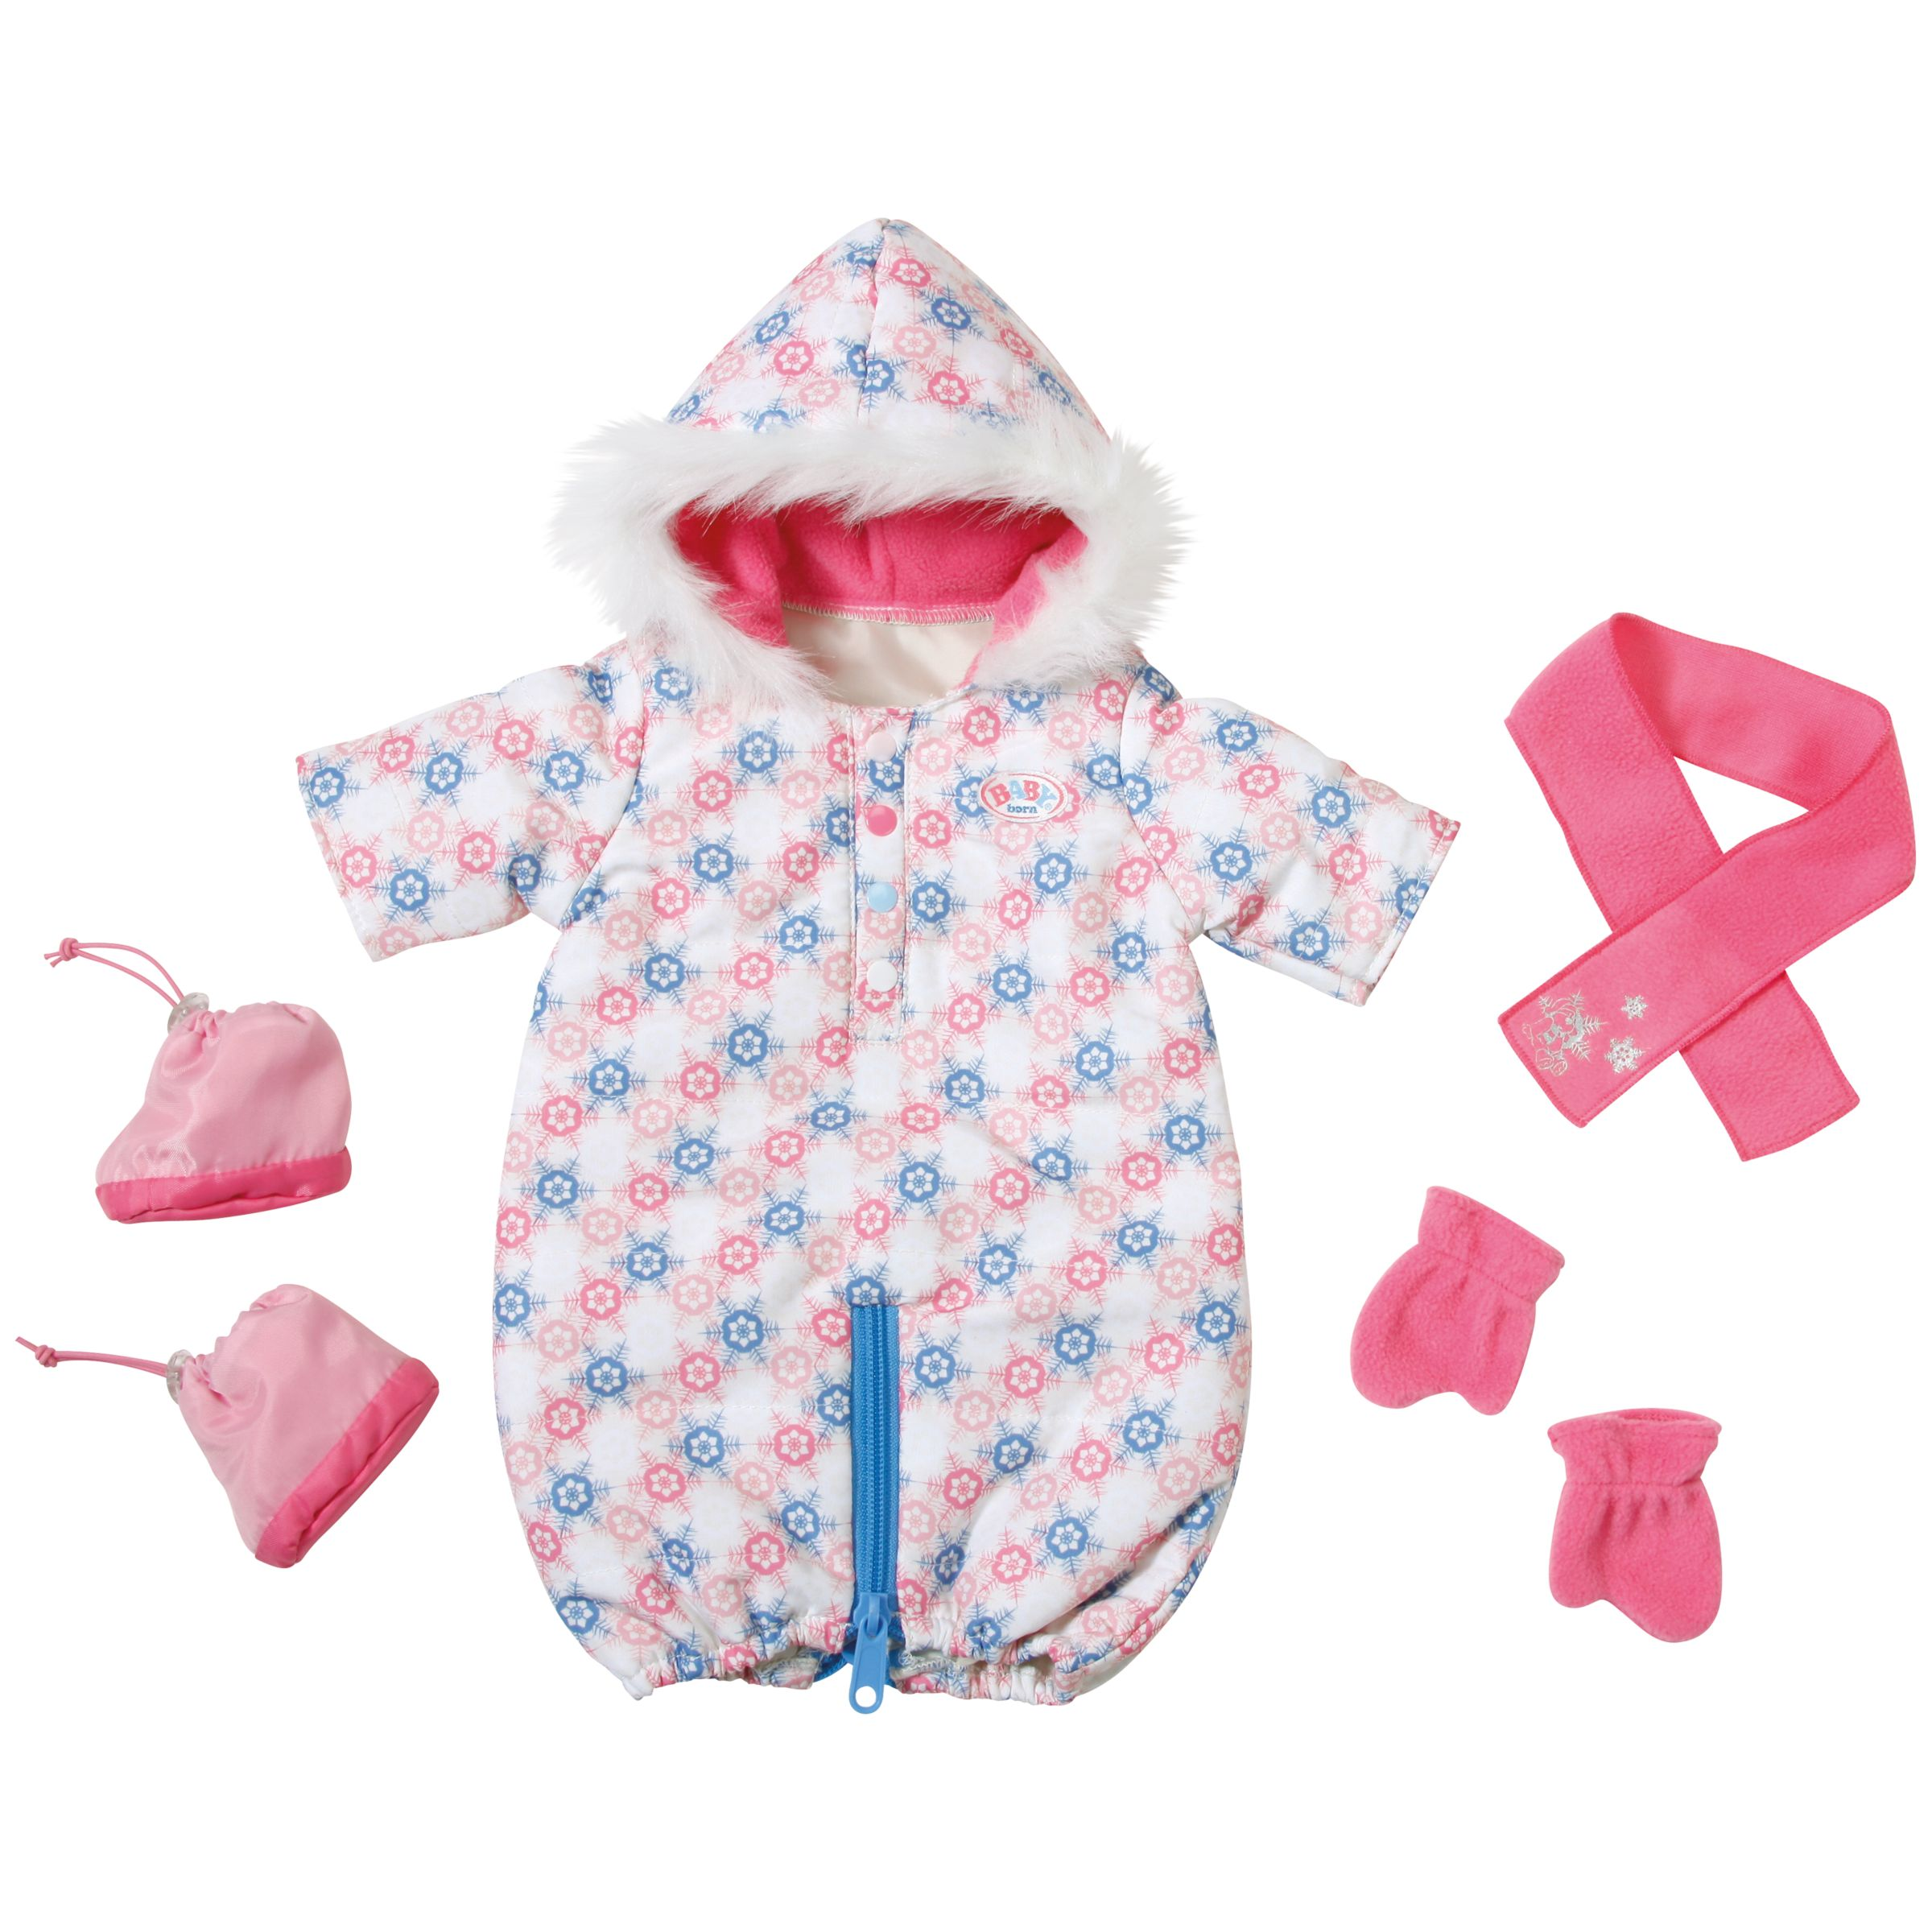 Baby Born Deluxe Winter Outfit